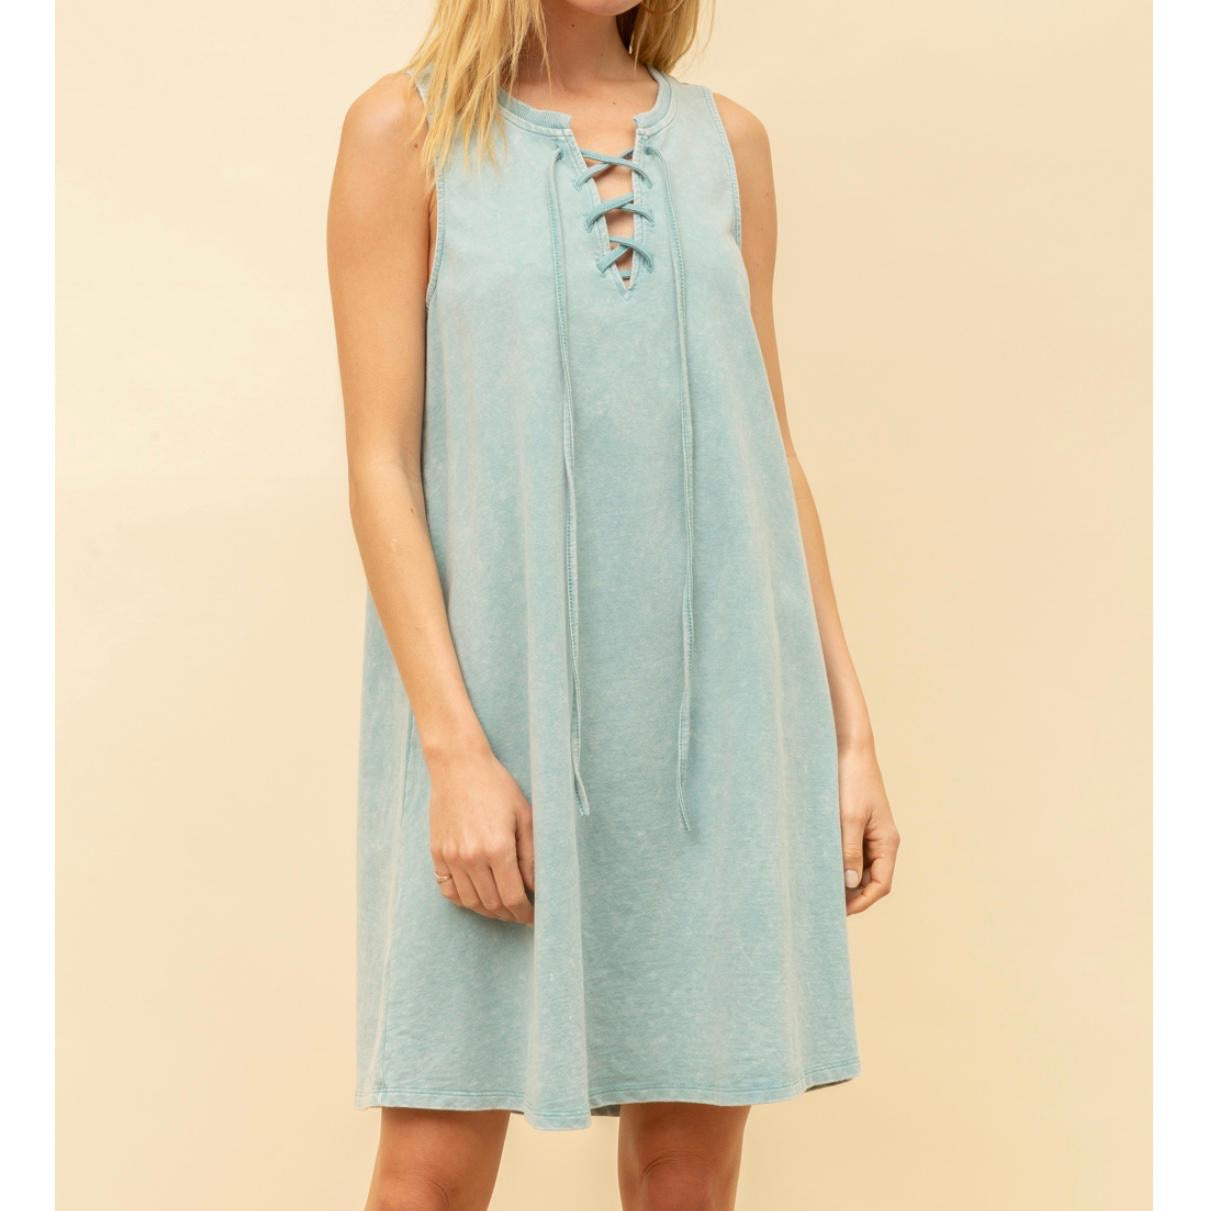 French Terry Lace Up Dress